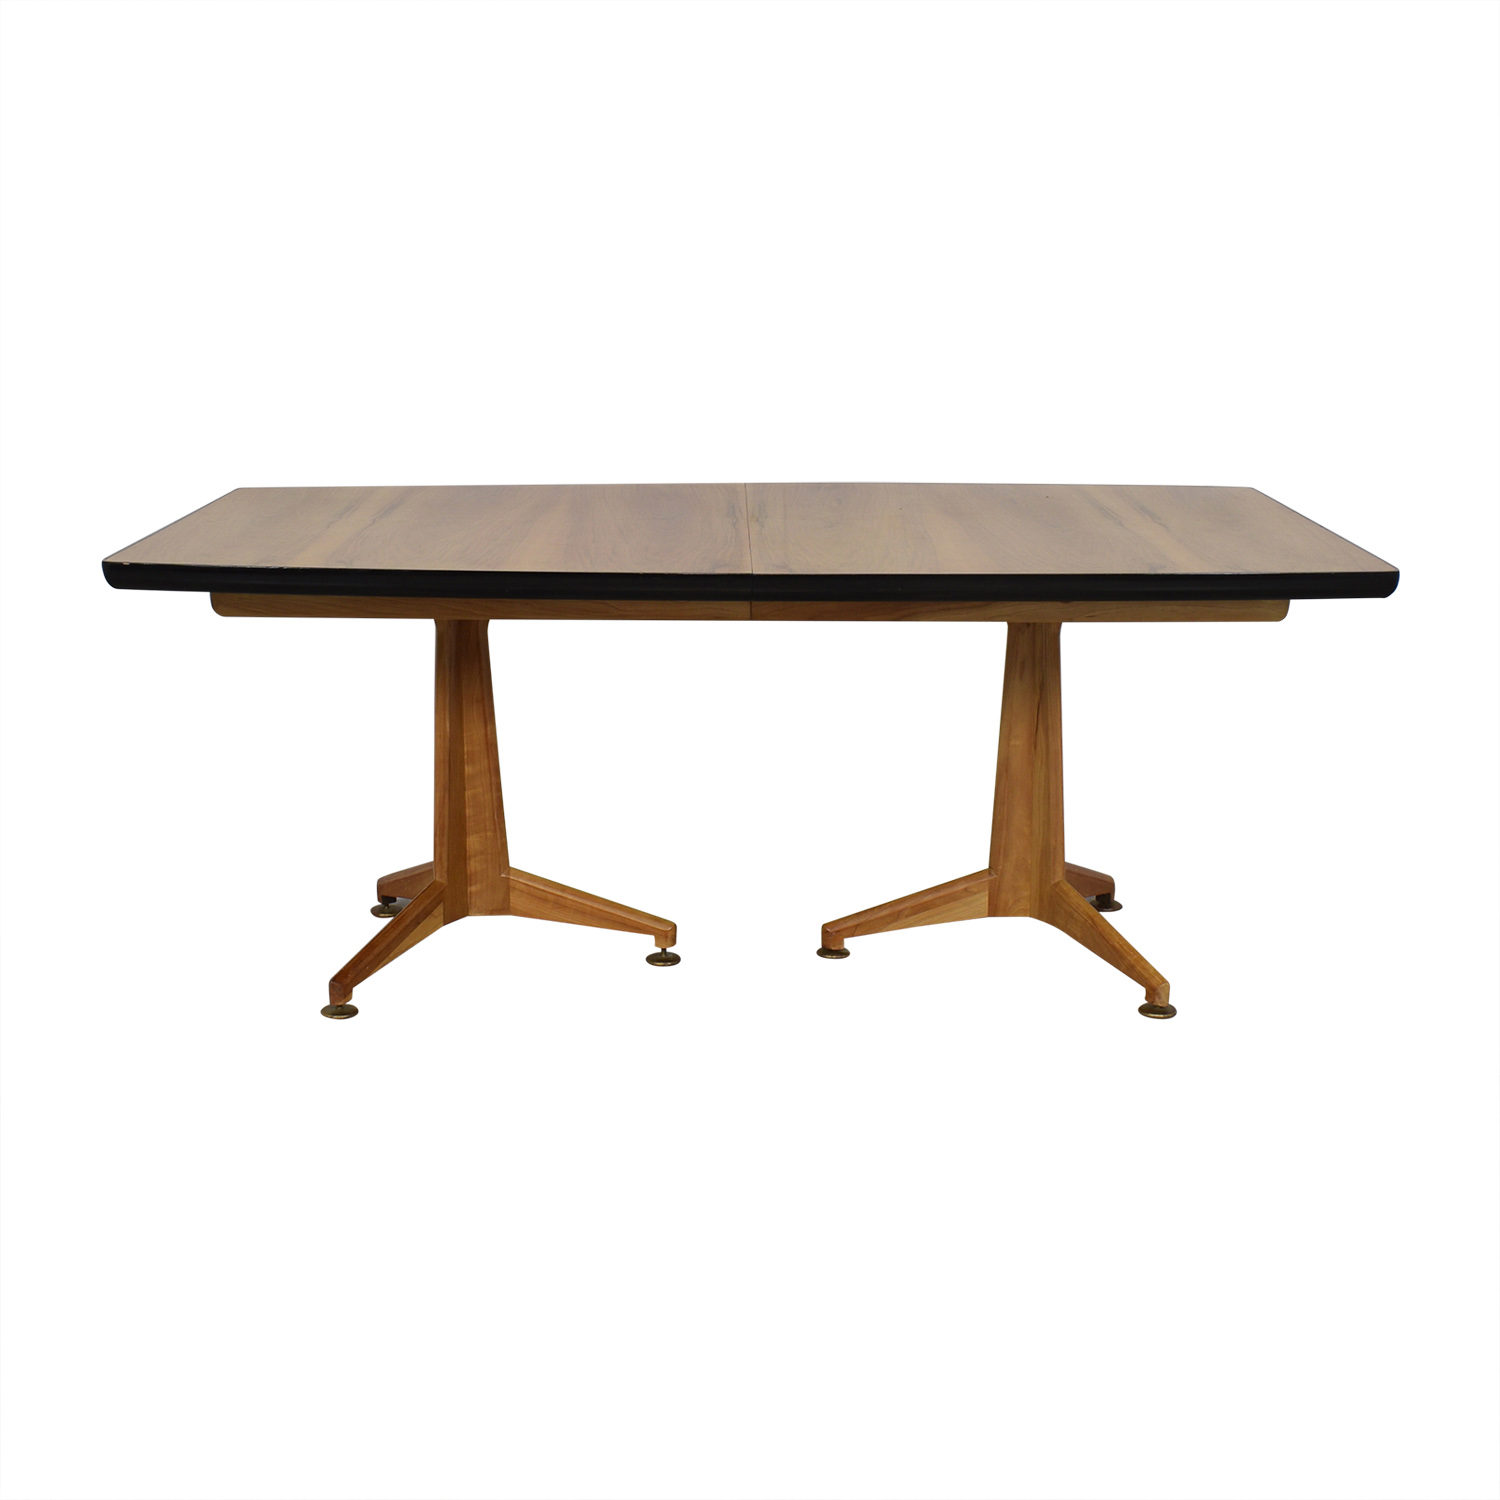 Johnson Furniture Johnson Furniture Mid Century Modern Extendable Dining Table coupon